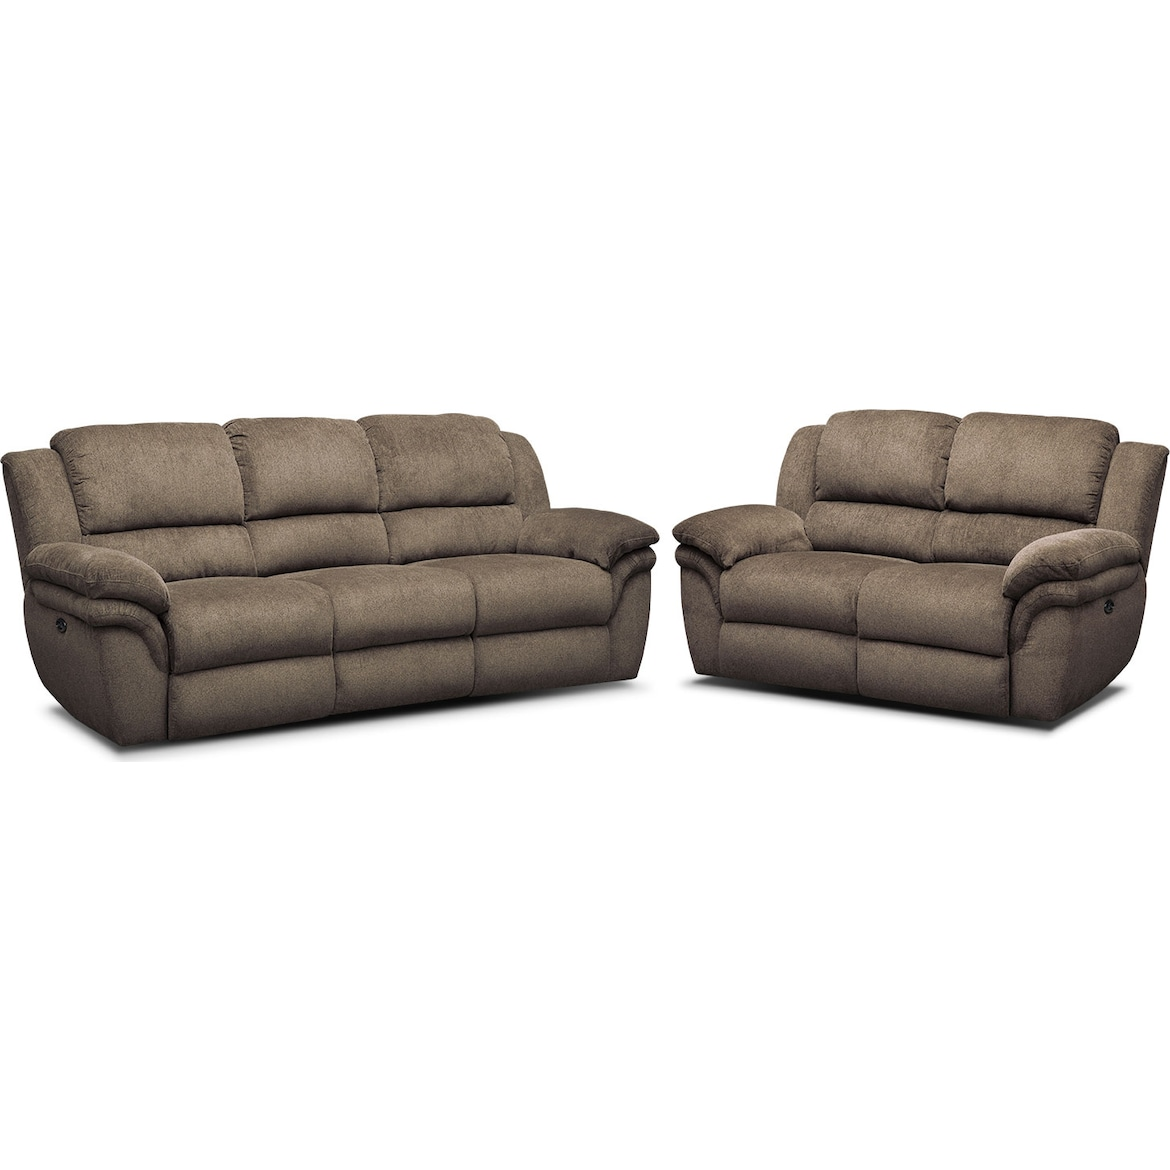 Aldo Dual Power Reclining Sofa And Loveseat Set Value